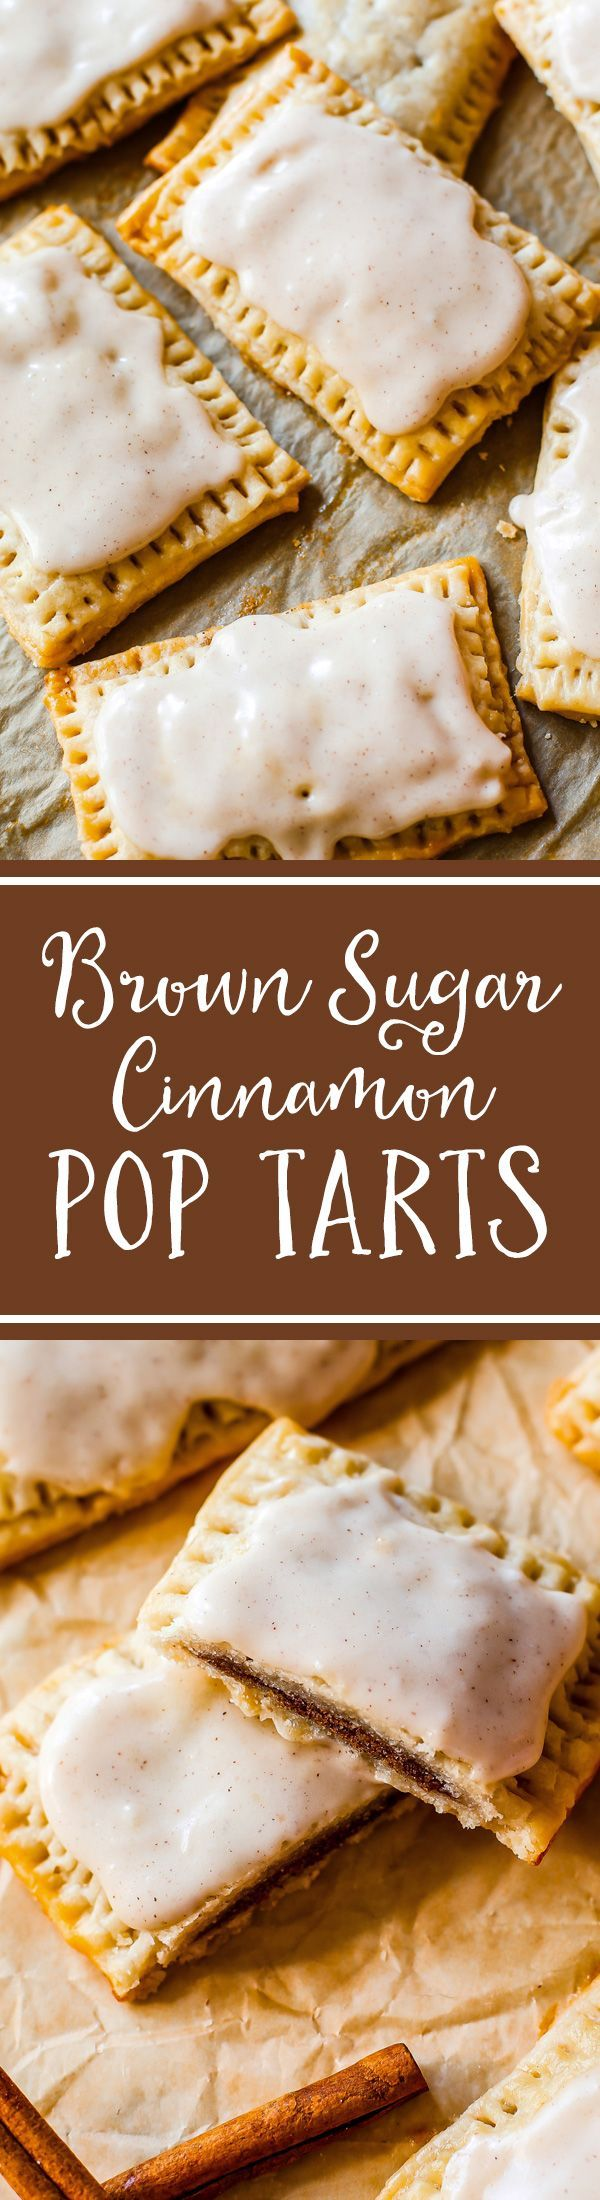 "Homemade Brown Sugar Cinnamon Pop-Tarts. 100% from scratch. The frosting ""sets"" after an hour making them identical to the originals. Recipe at sallysbakingaddiction.com"